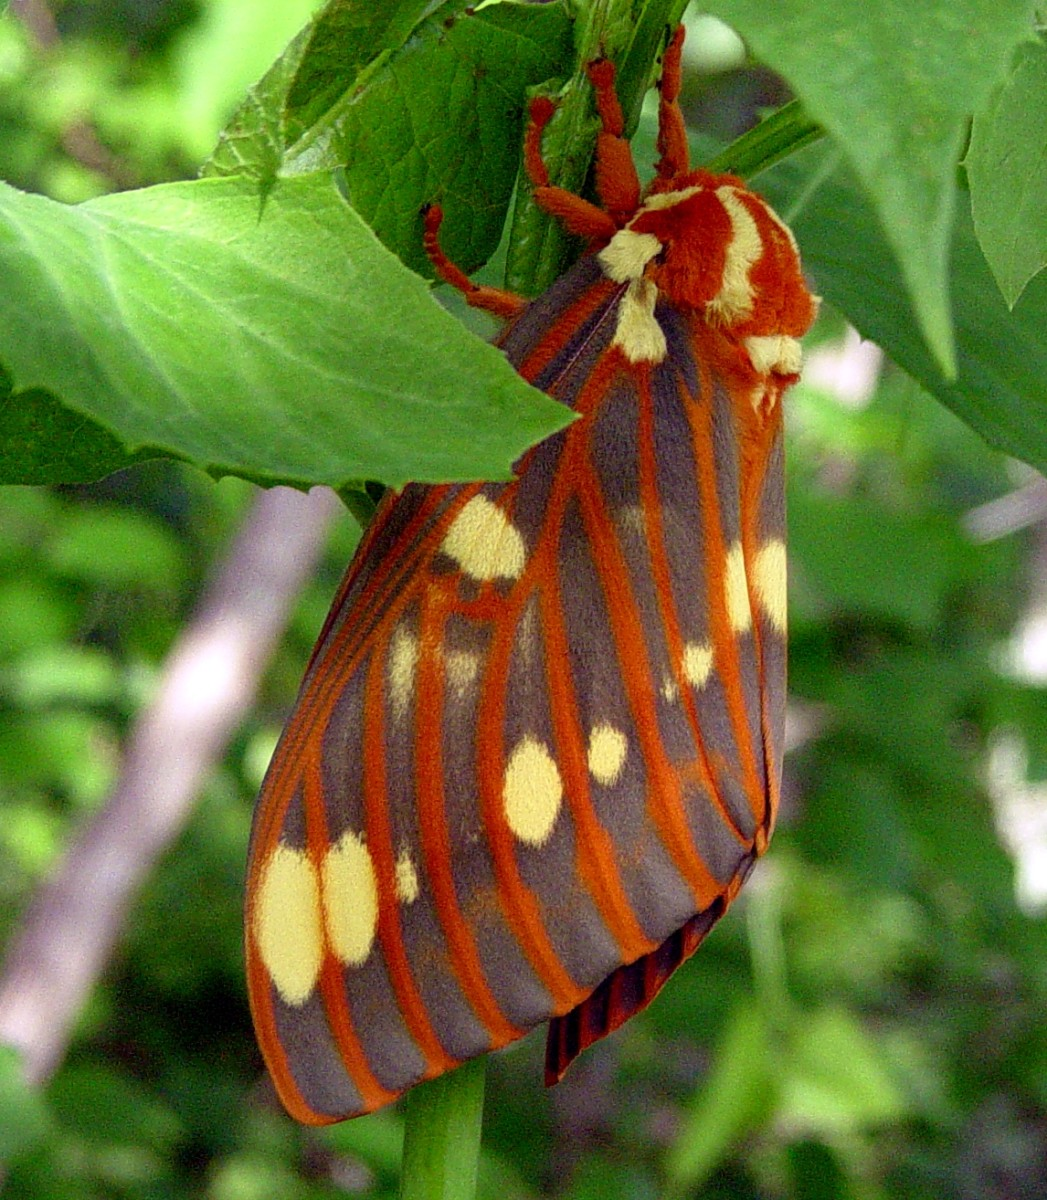 A royal or regal moth.